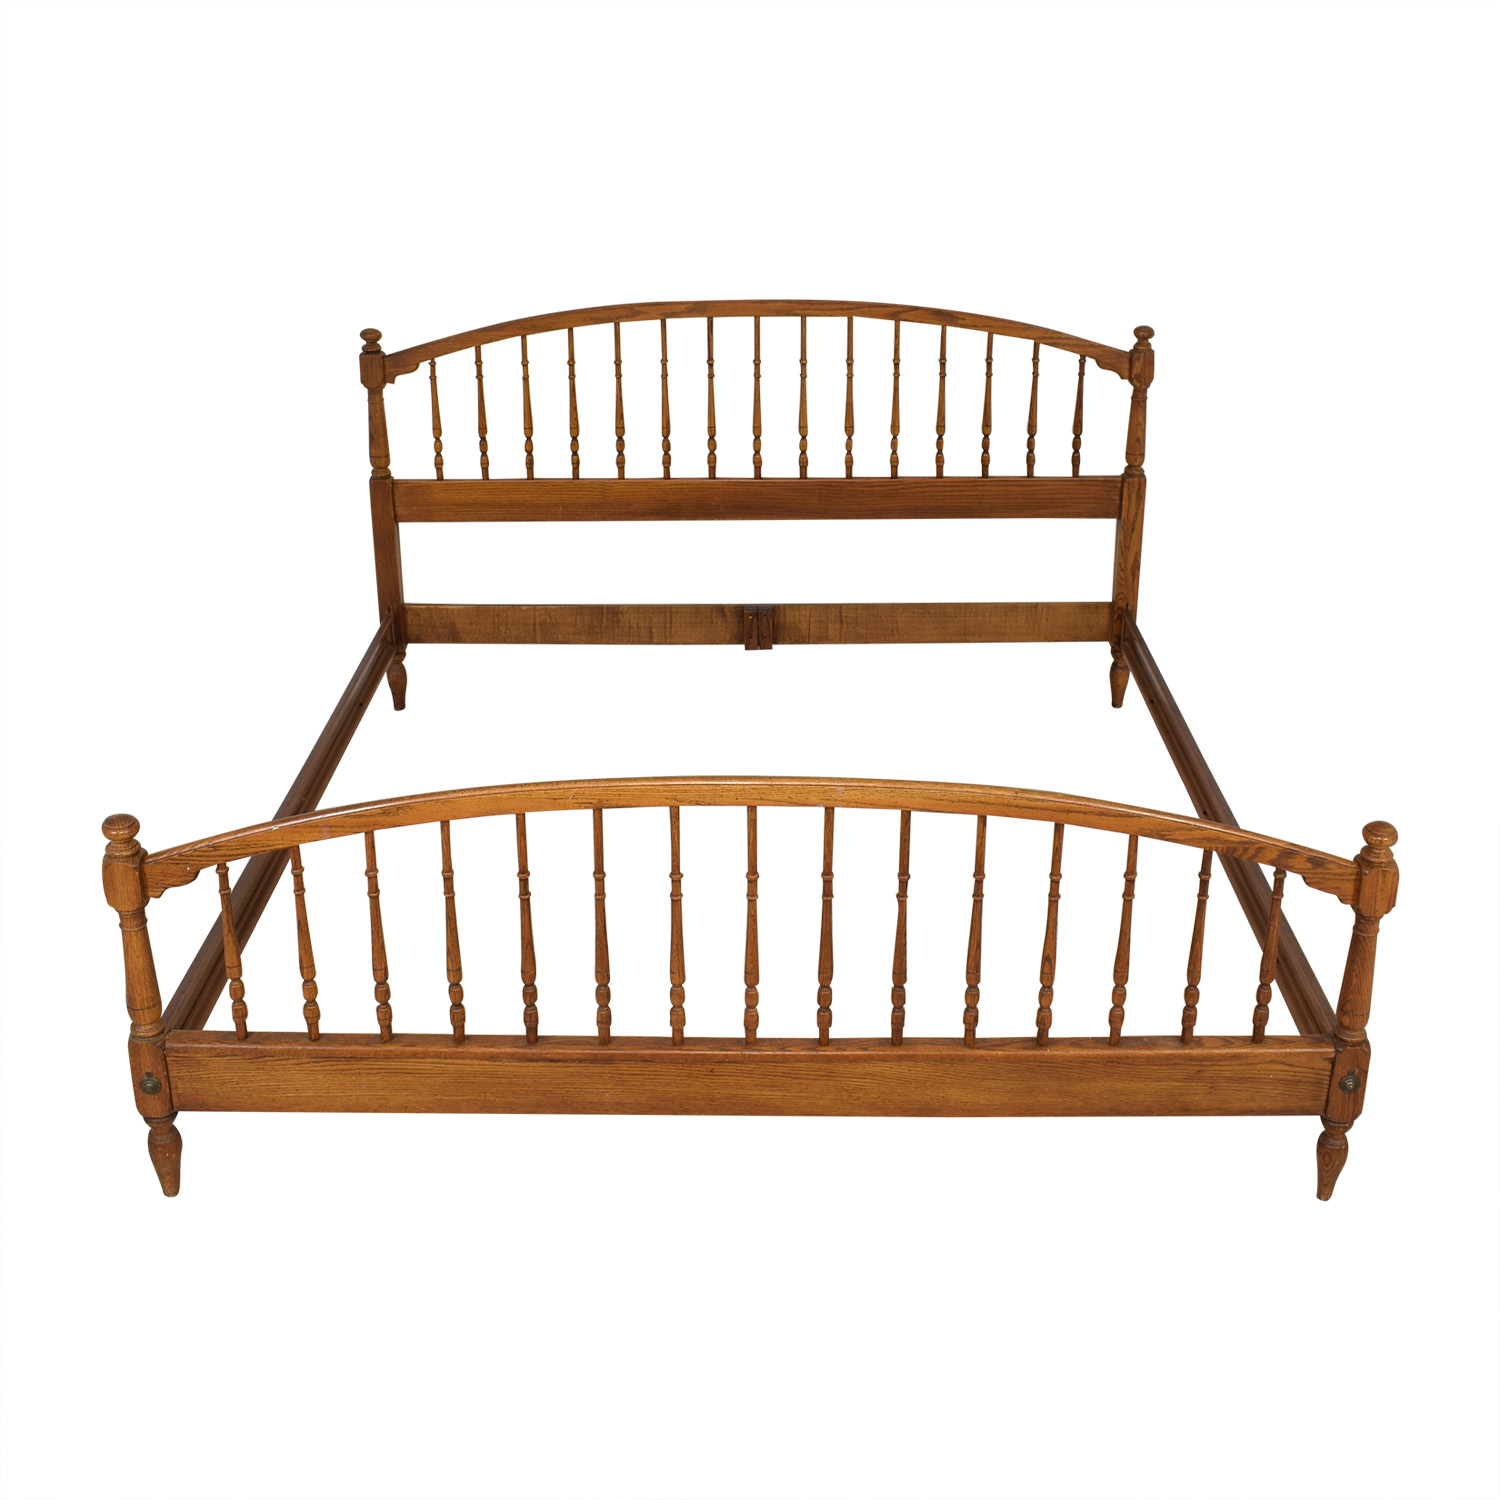 Knob Creek Knob Creek Spindle King Bed Frame